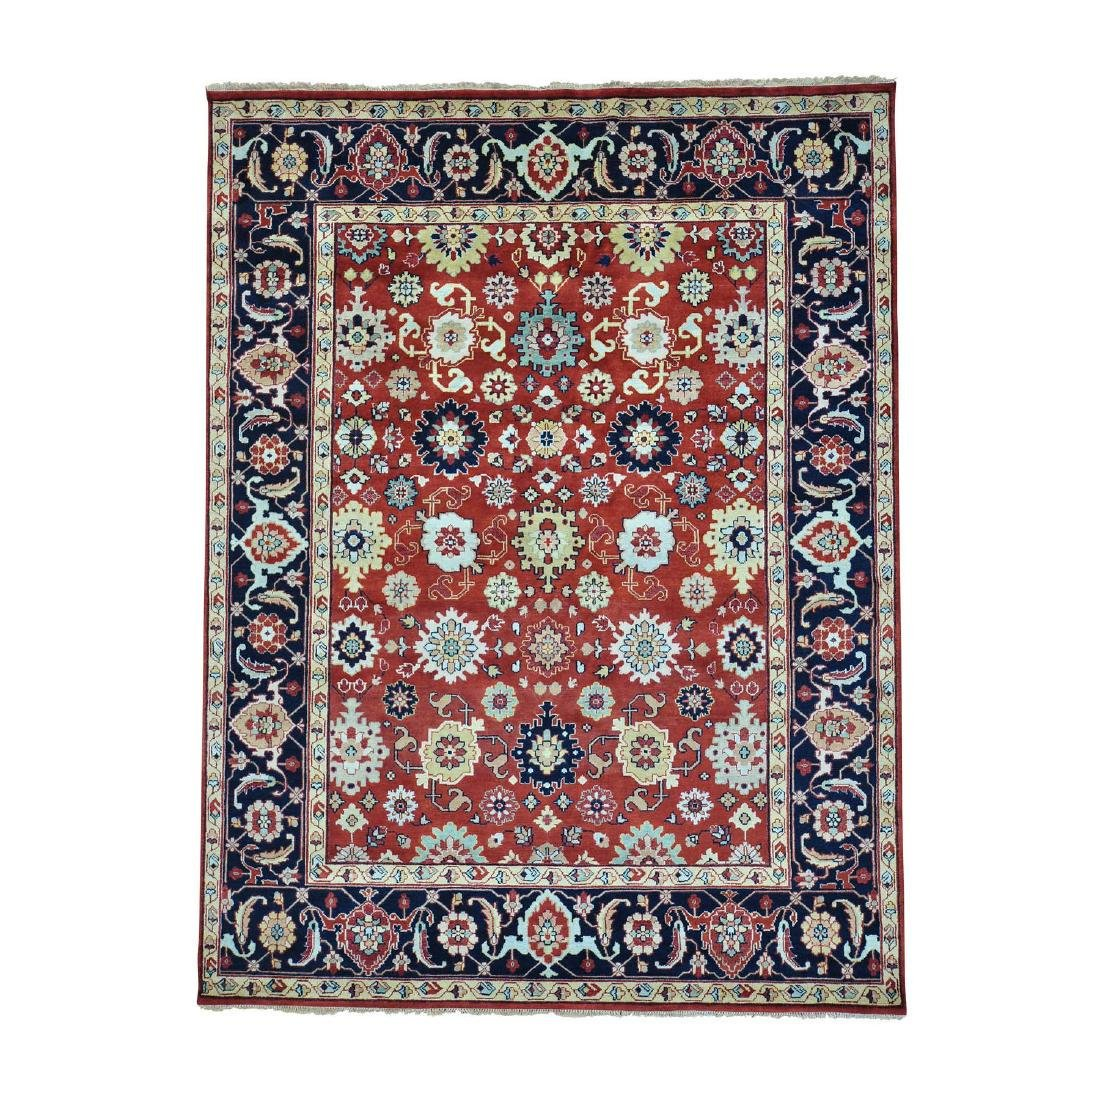 Hand Knotted Mahal All Over Design Wool Rug 9x11.10